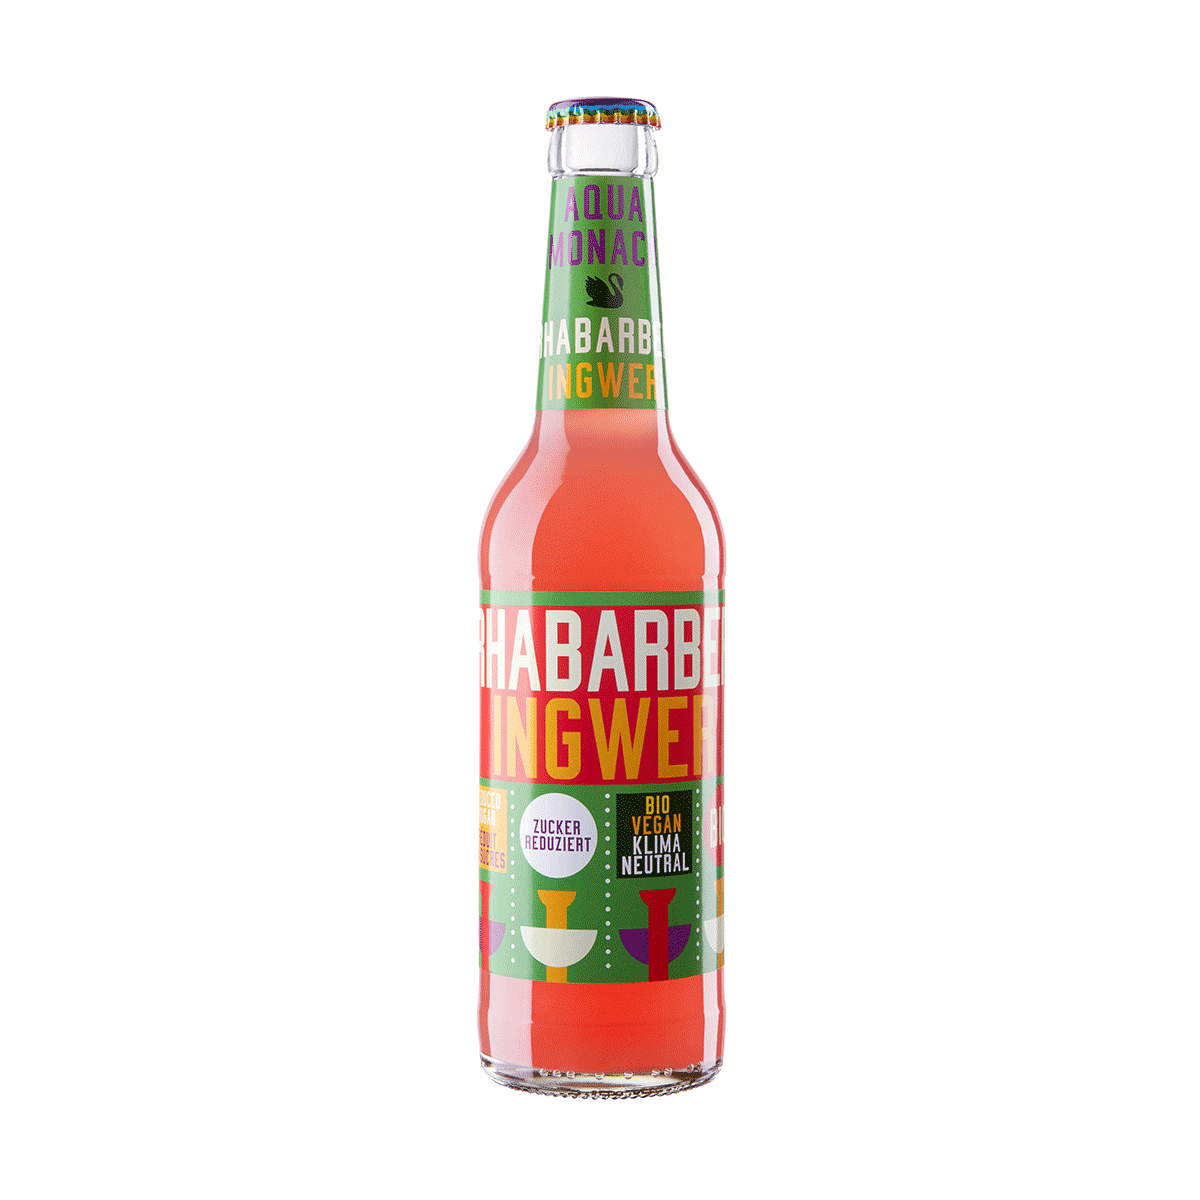 Limonade | Rhubarbe & gingembre | 33 cl